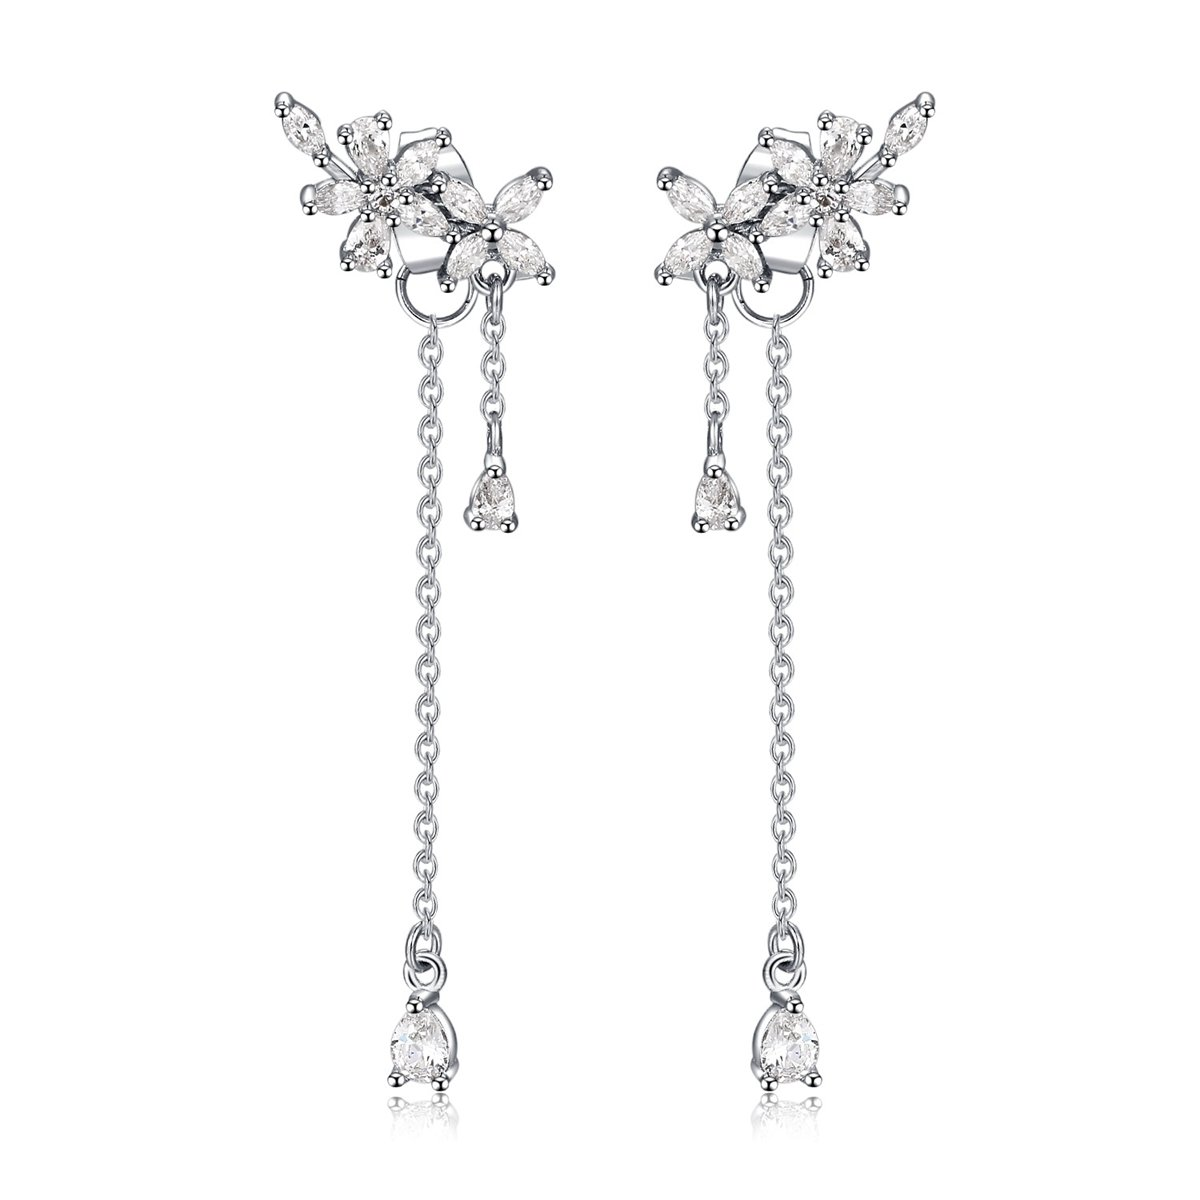 Platinum Plated Leaves Wrap Earrings Crawler for Women Dainty Flowers Threader Tassel Chain